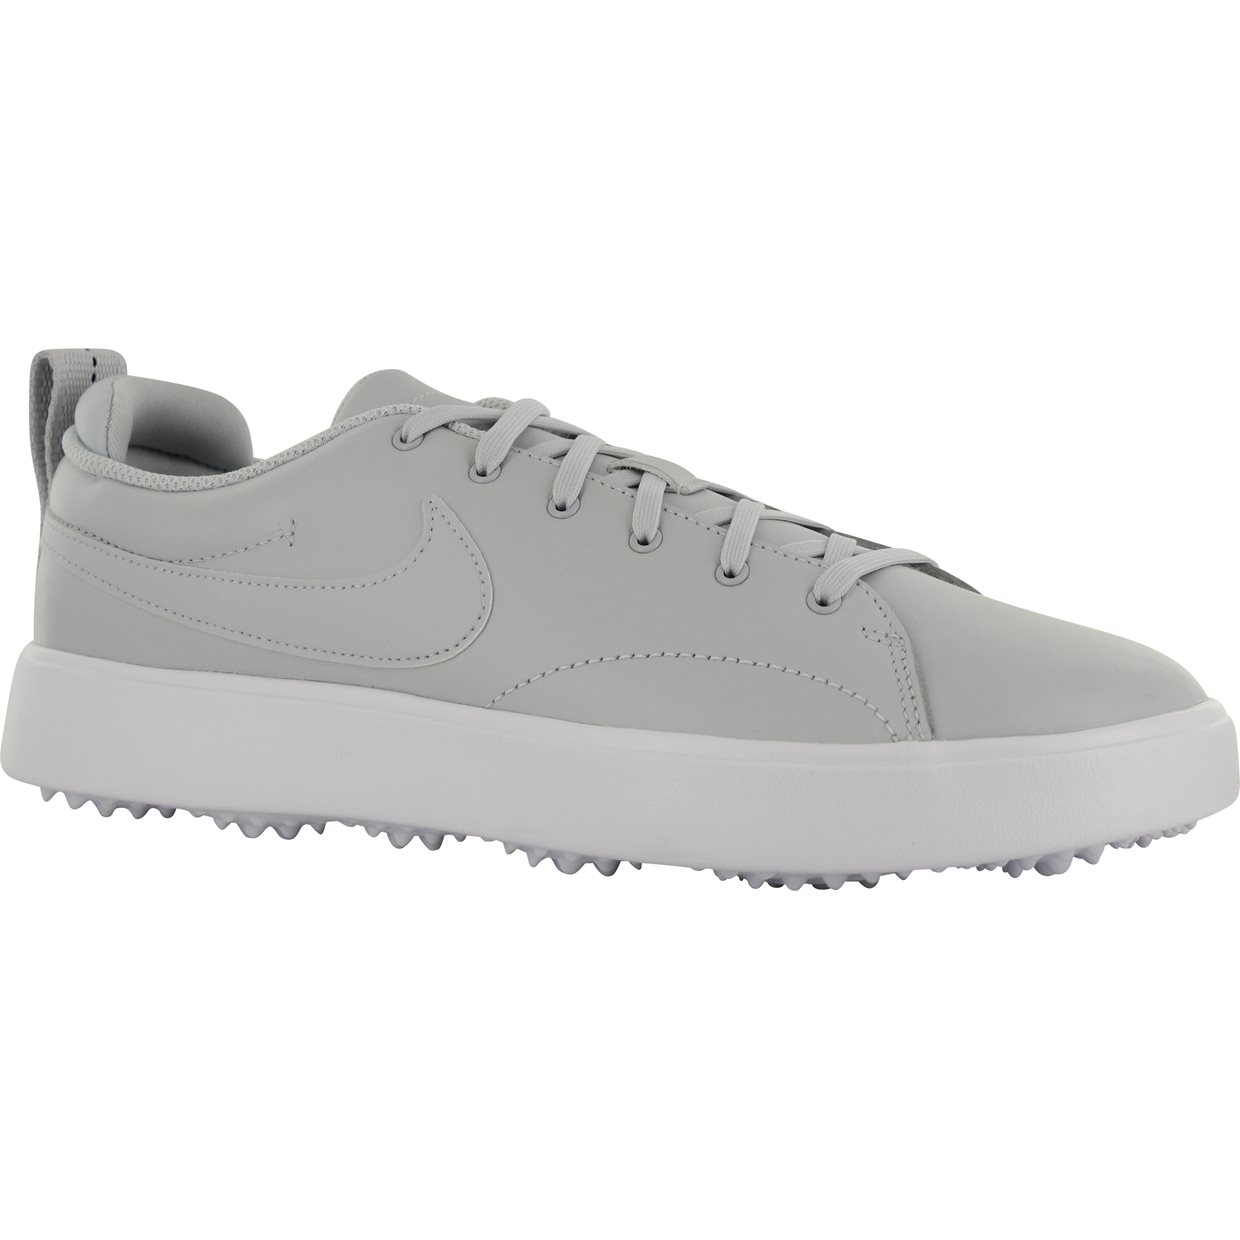 e1bd2476fc8c Nike Course Classic Spikeless Shoes at GlobalGolf.com